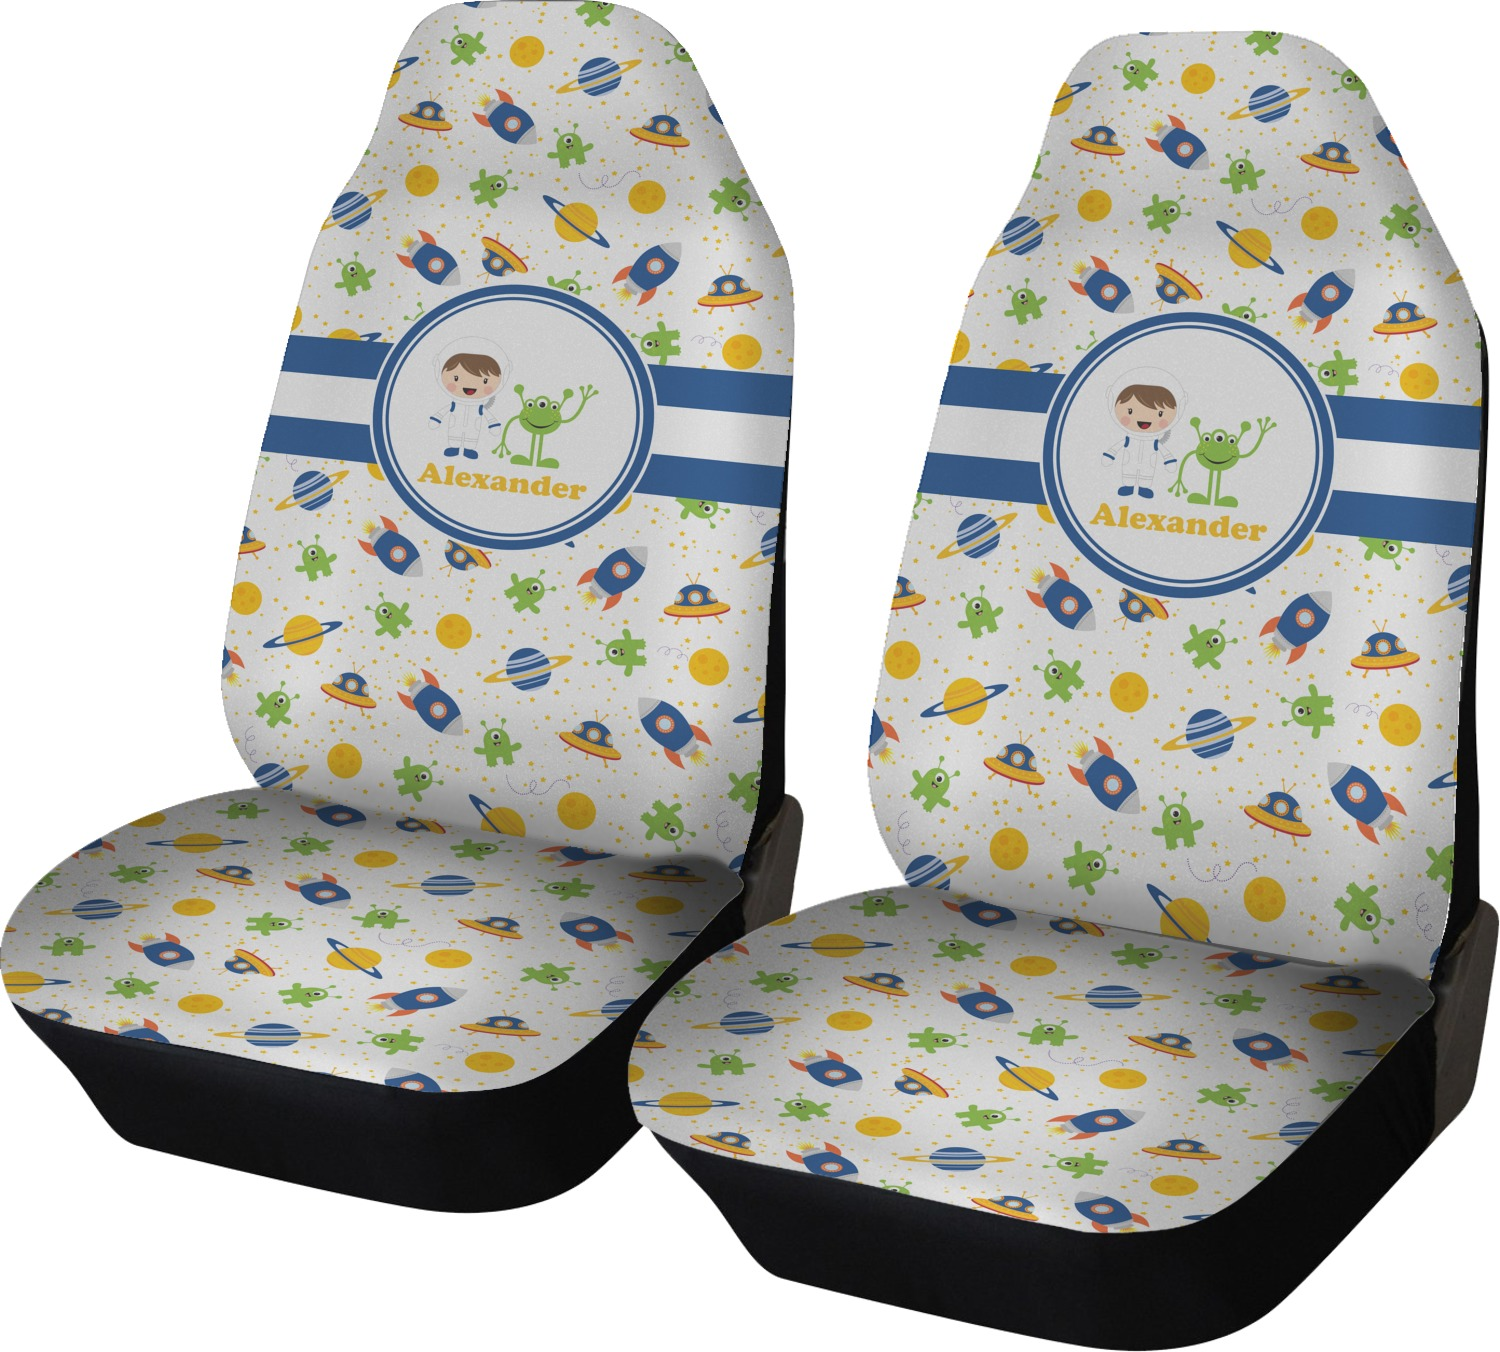 Boys Space Themed Car Seat Covers Set Of Two